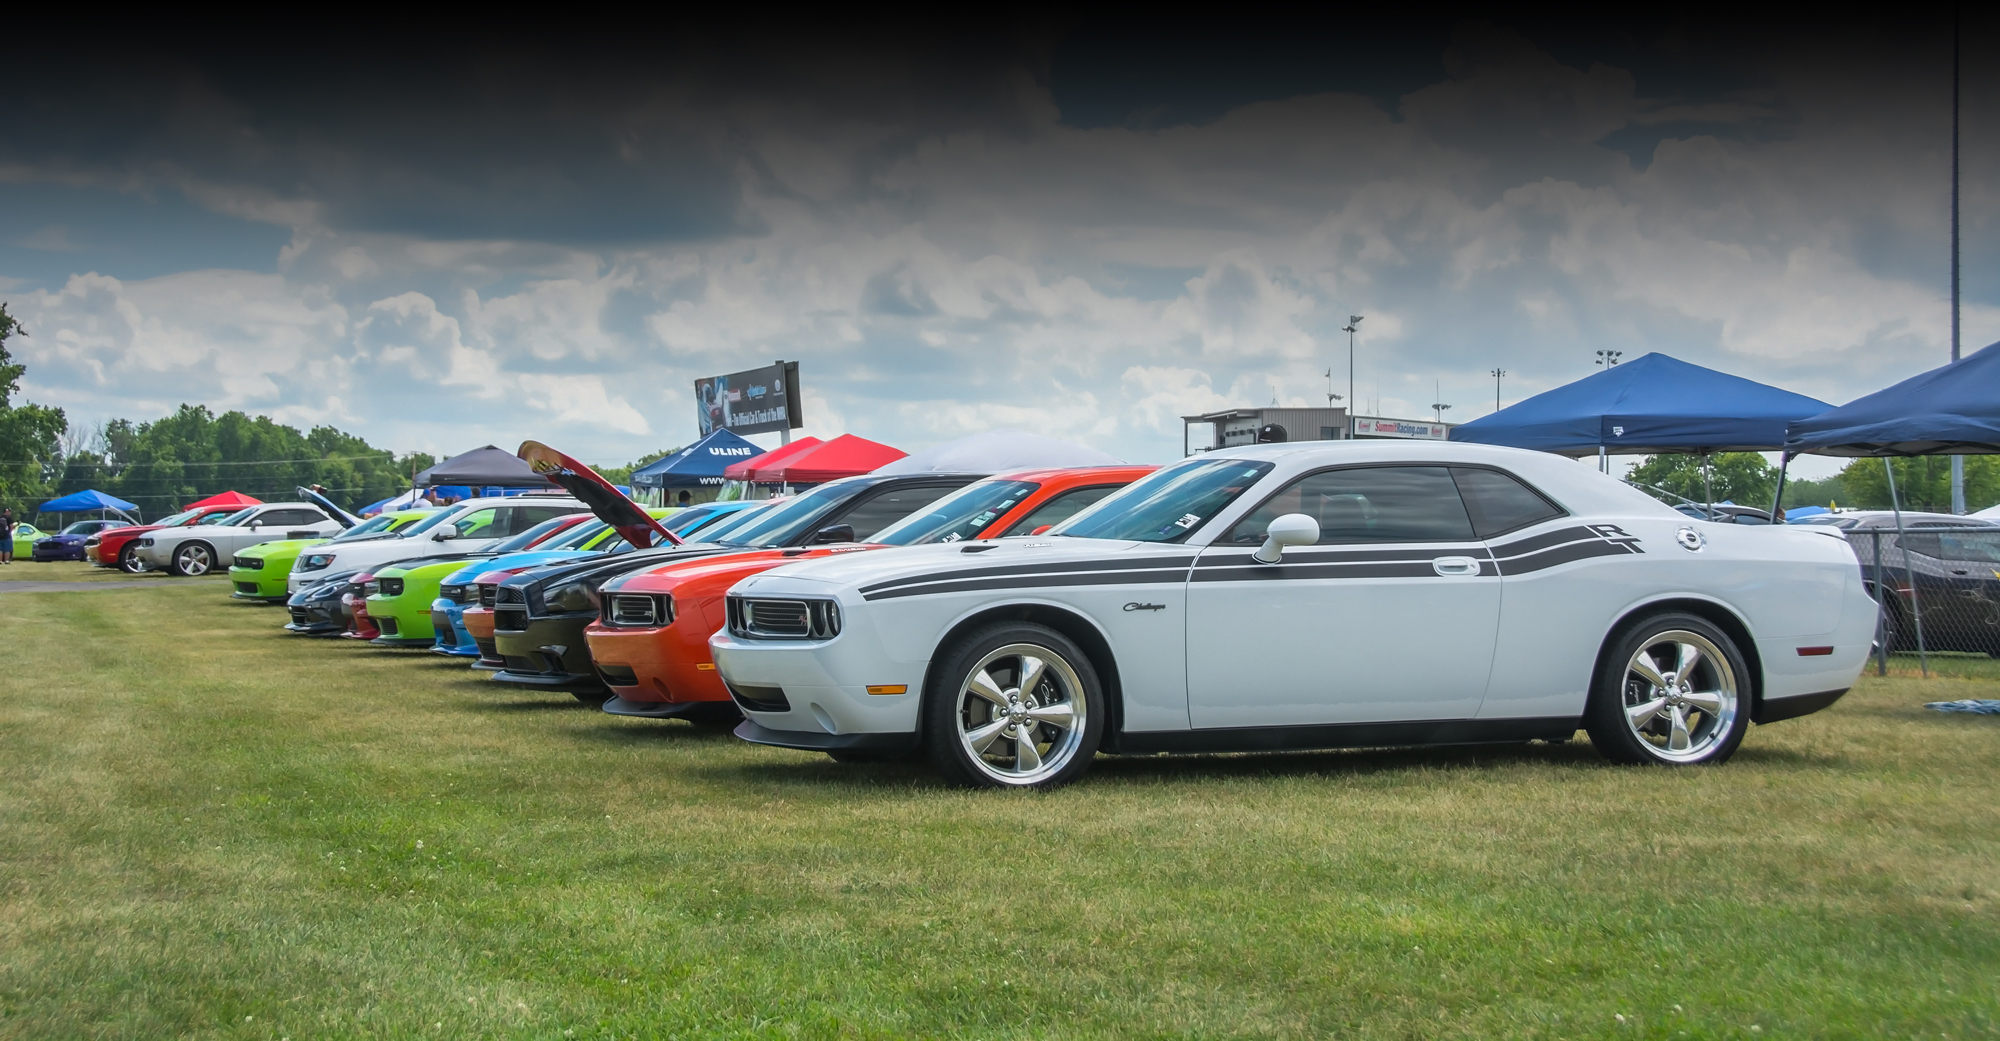 Car Shows AMMO All Modern Mopars Of Ohio - Car show vendor ideas